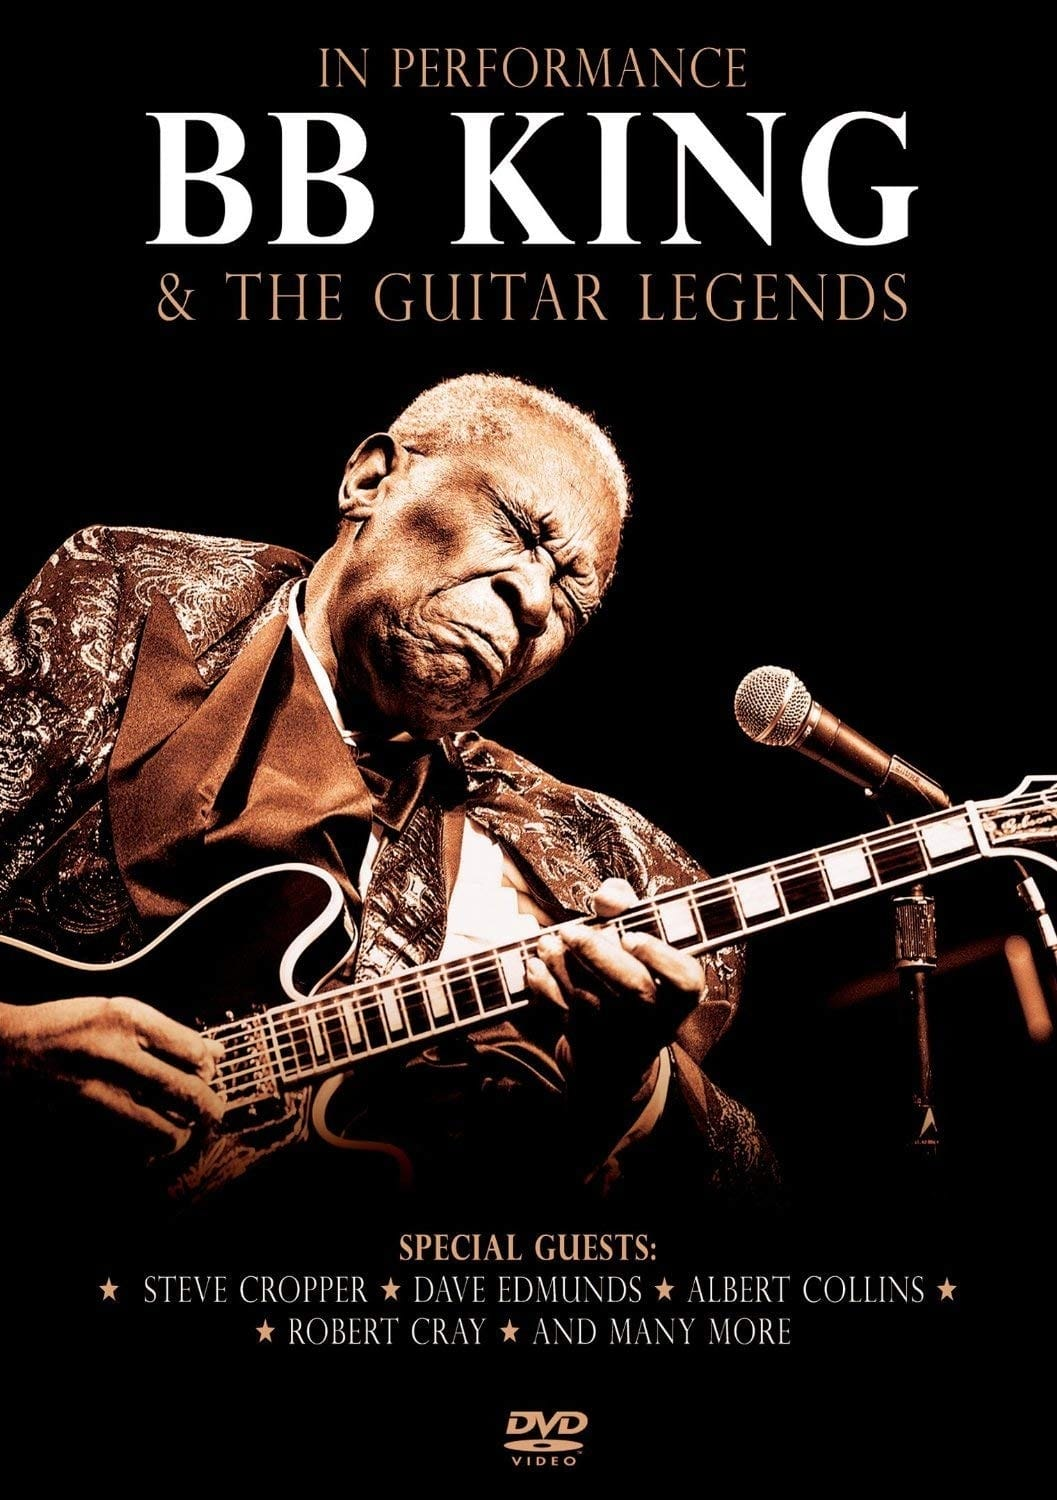 In Performance BB King & The Guitar Legends (2014)